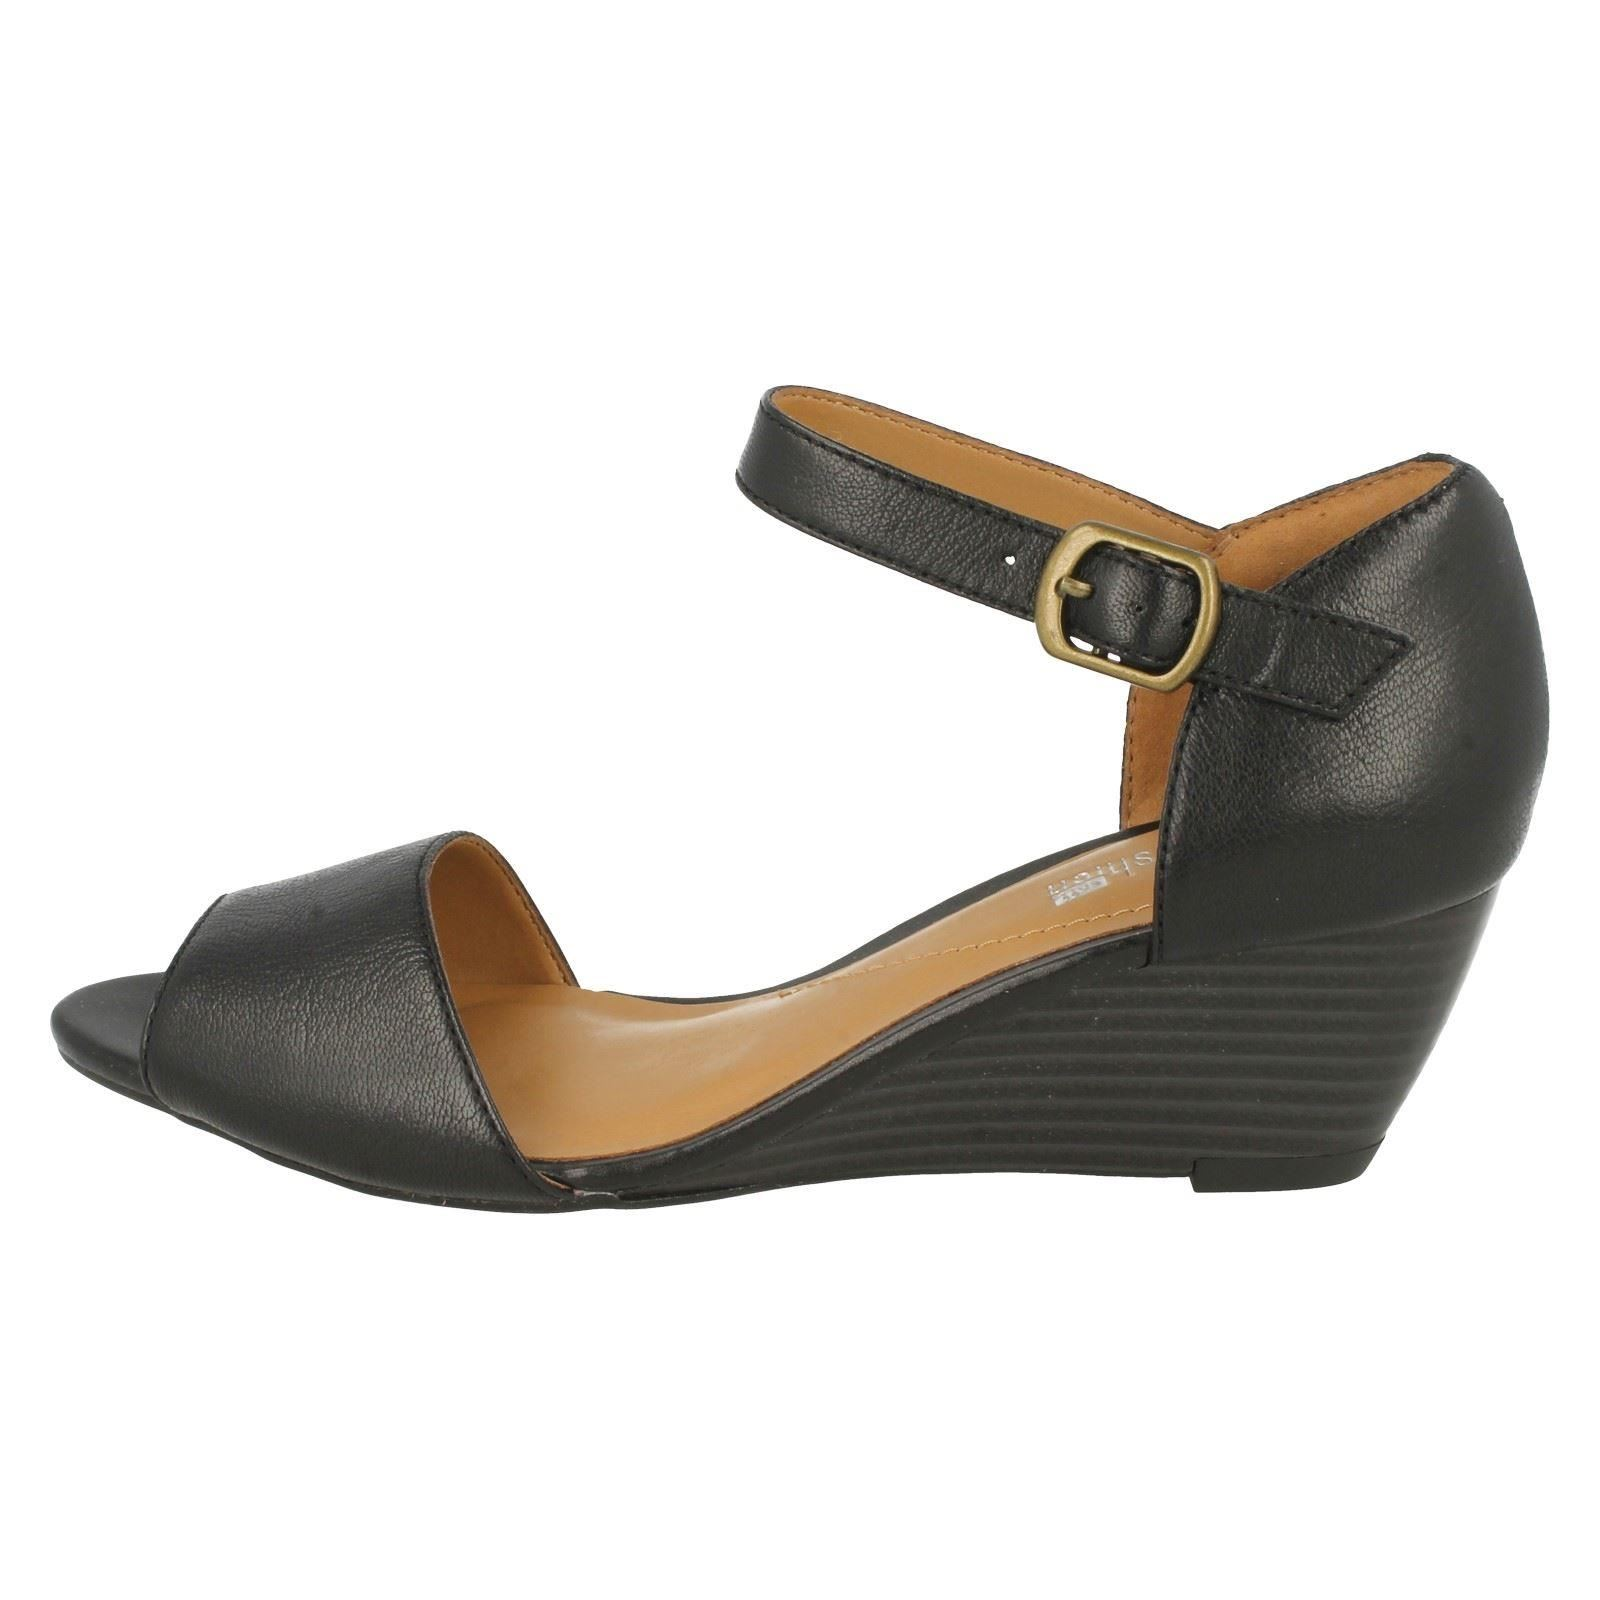 clarks smart sandals with wedge brielle drive ebay